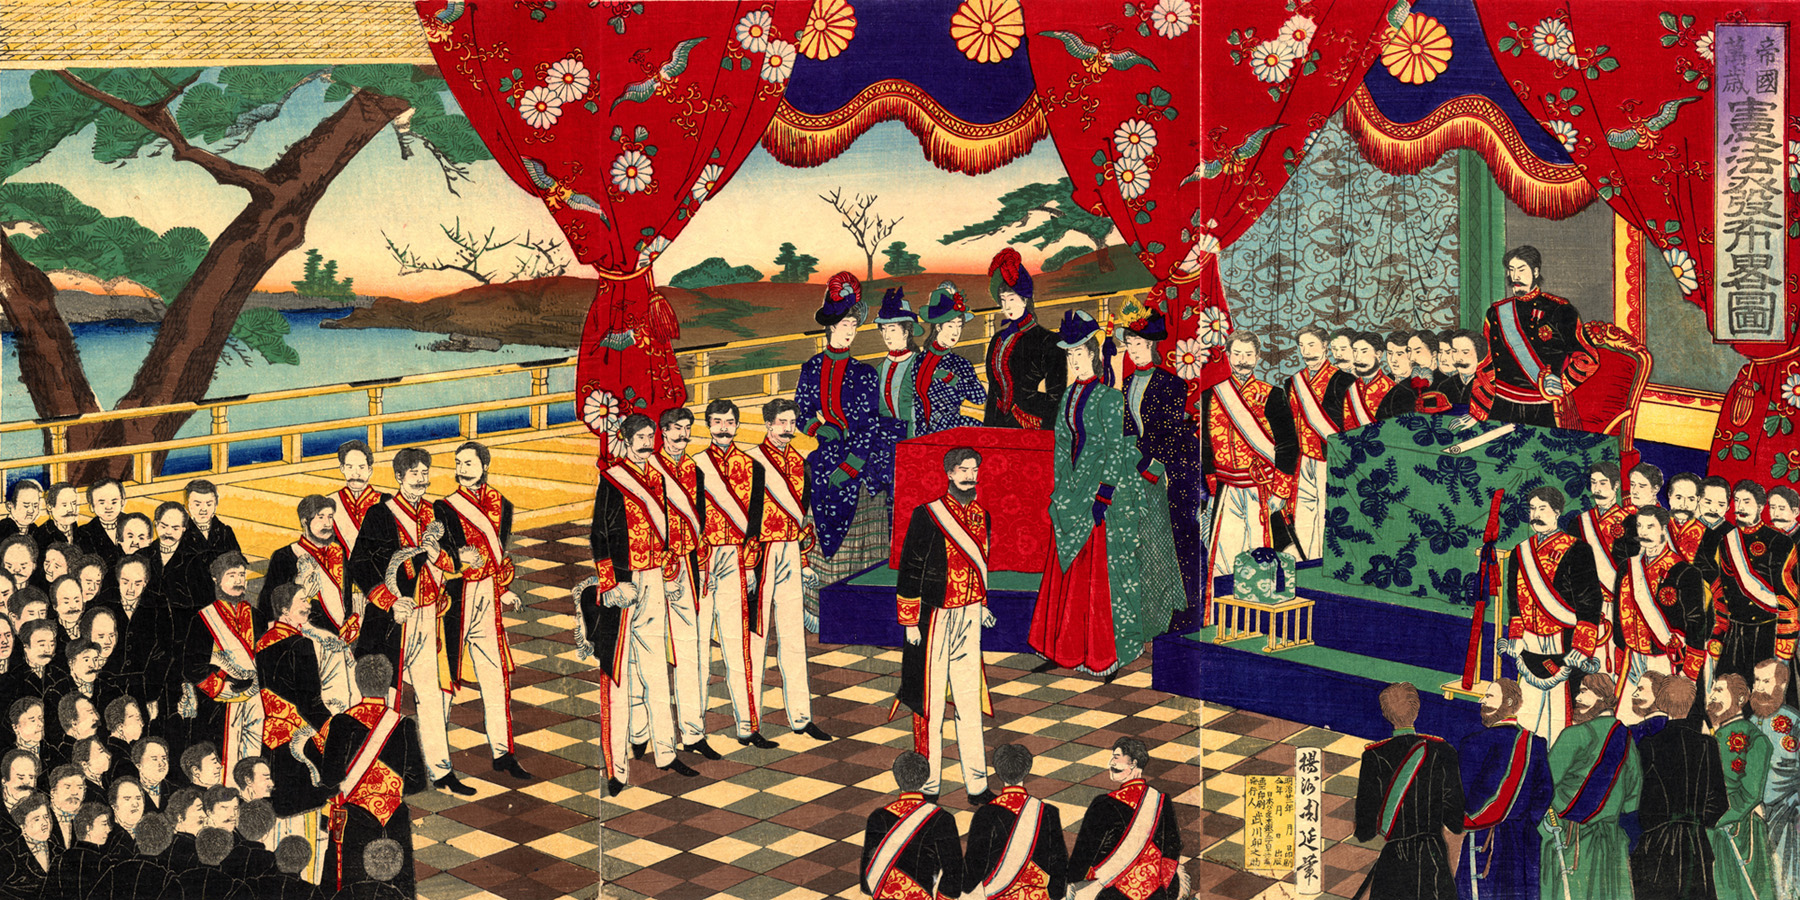 thr restructuring of japan during the meiji era As the meiji period ended, japan seemed to be on the road to establishing a normal parliamentary government but instead there was a loss of confidence in political parties, opening the way for right-wing nationalists and militarists to take control of the government.